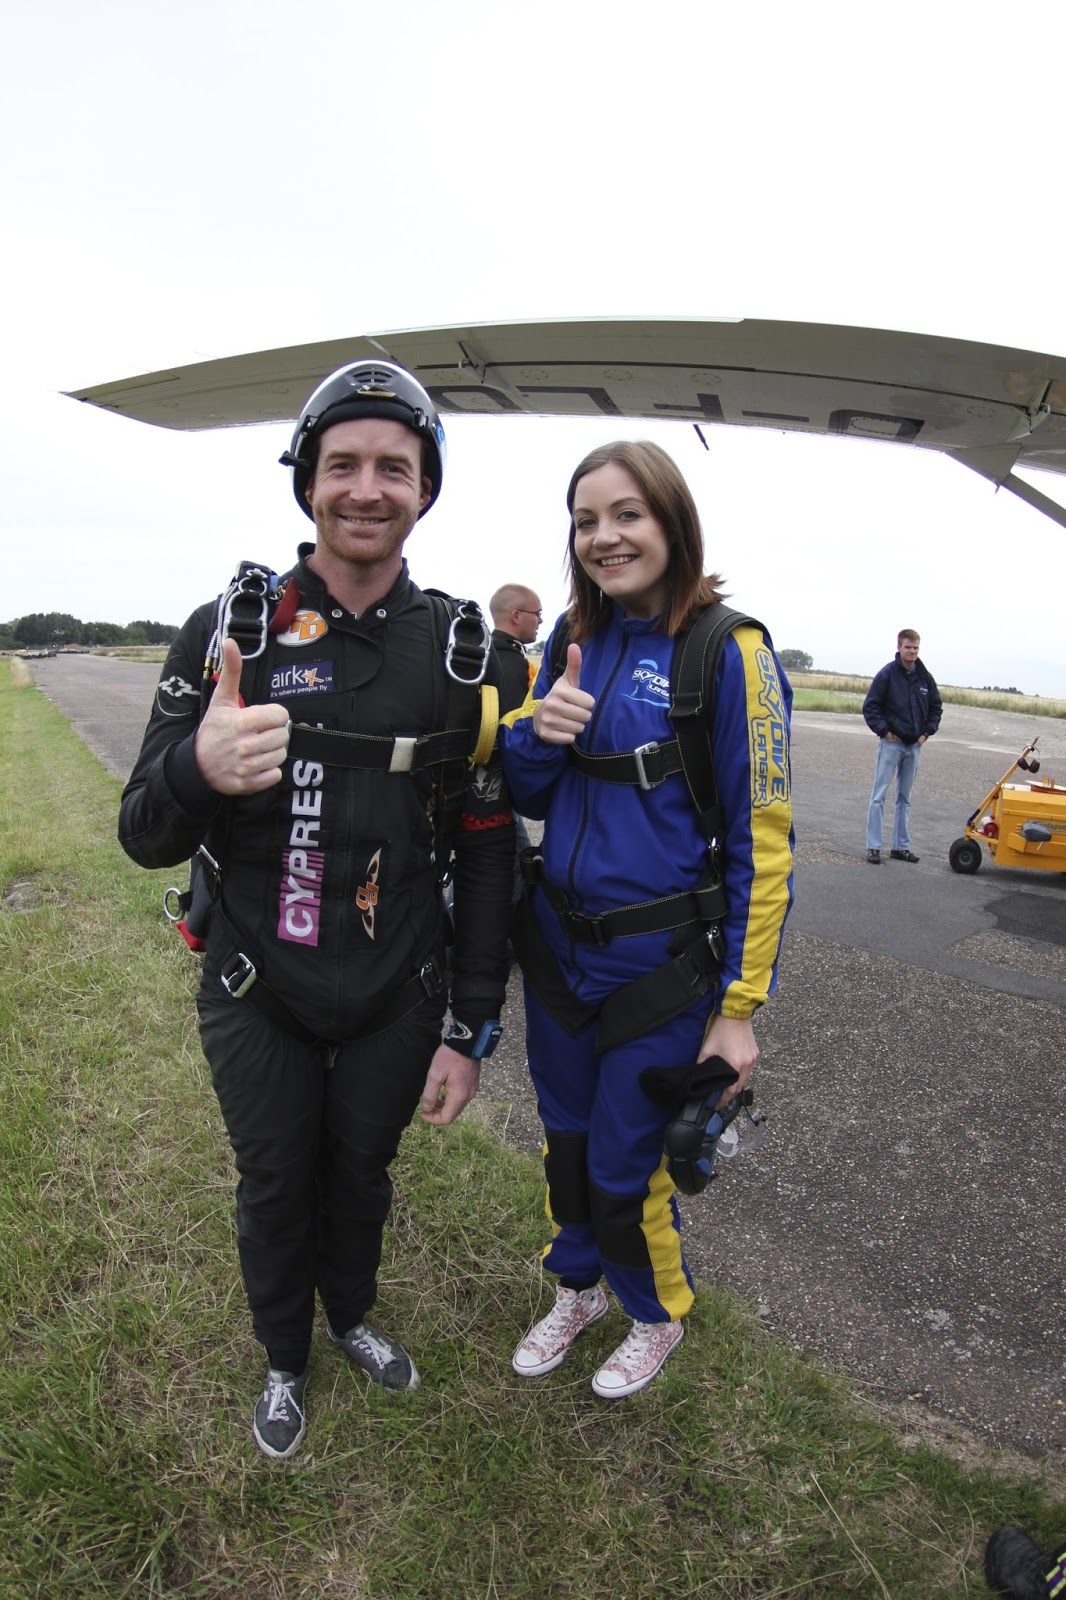 Dani Johanna's tandem skydive for Mind Charity